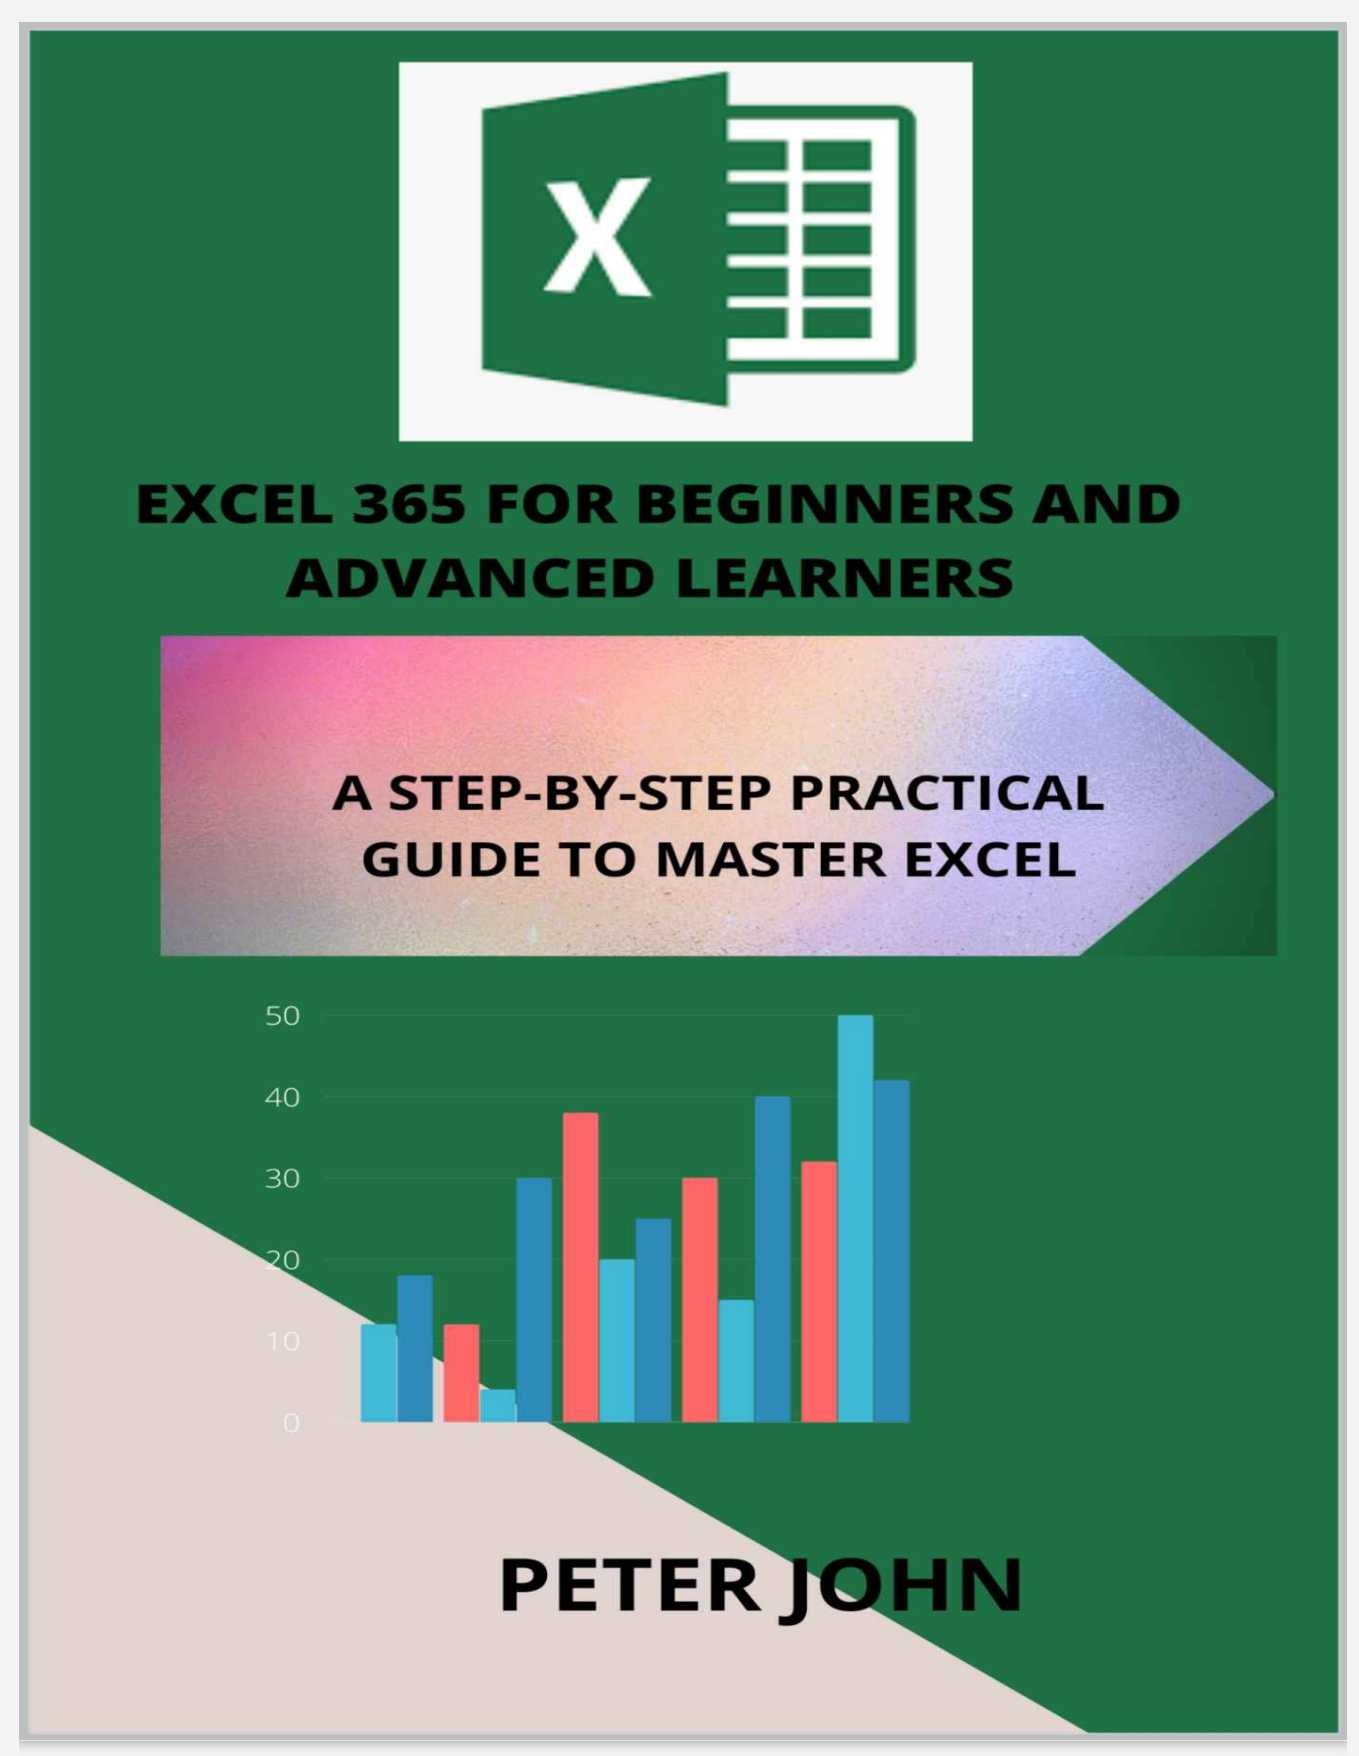 Excel 365 For Beginners And Advanced Learners: A Step-By-Step Practical Guide To Master Excel